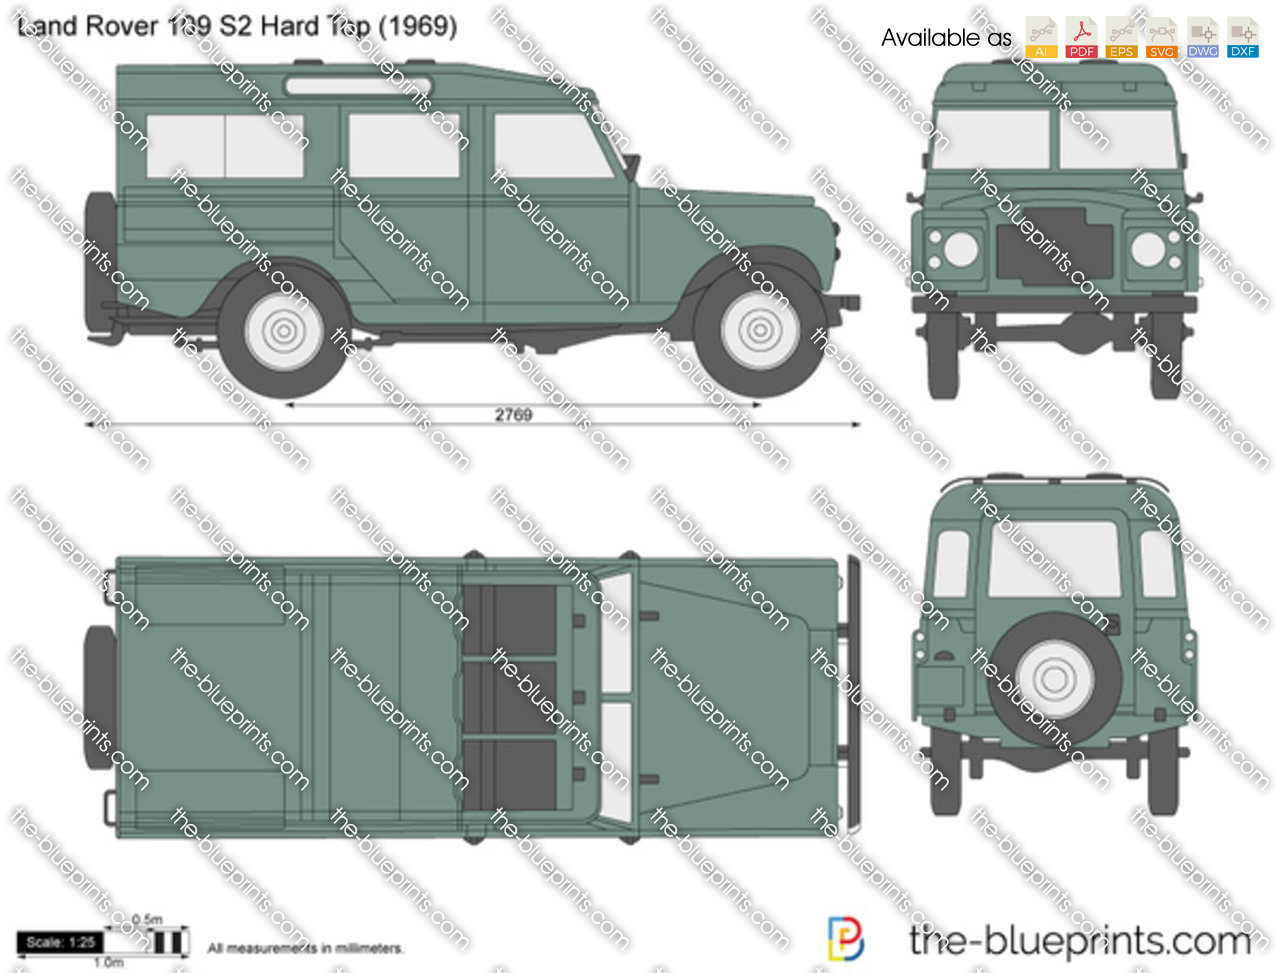 Land Rover 109 S2 Hard Top 1966